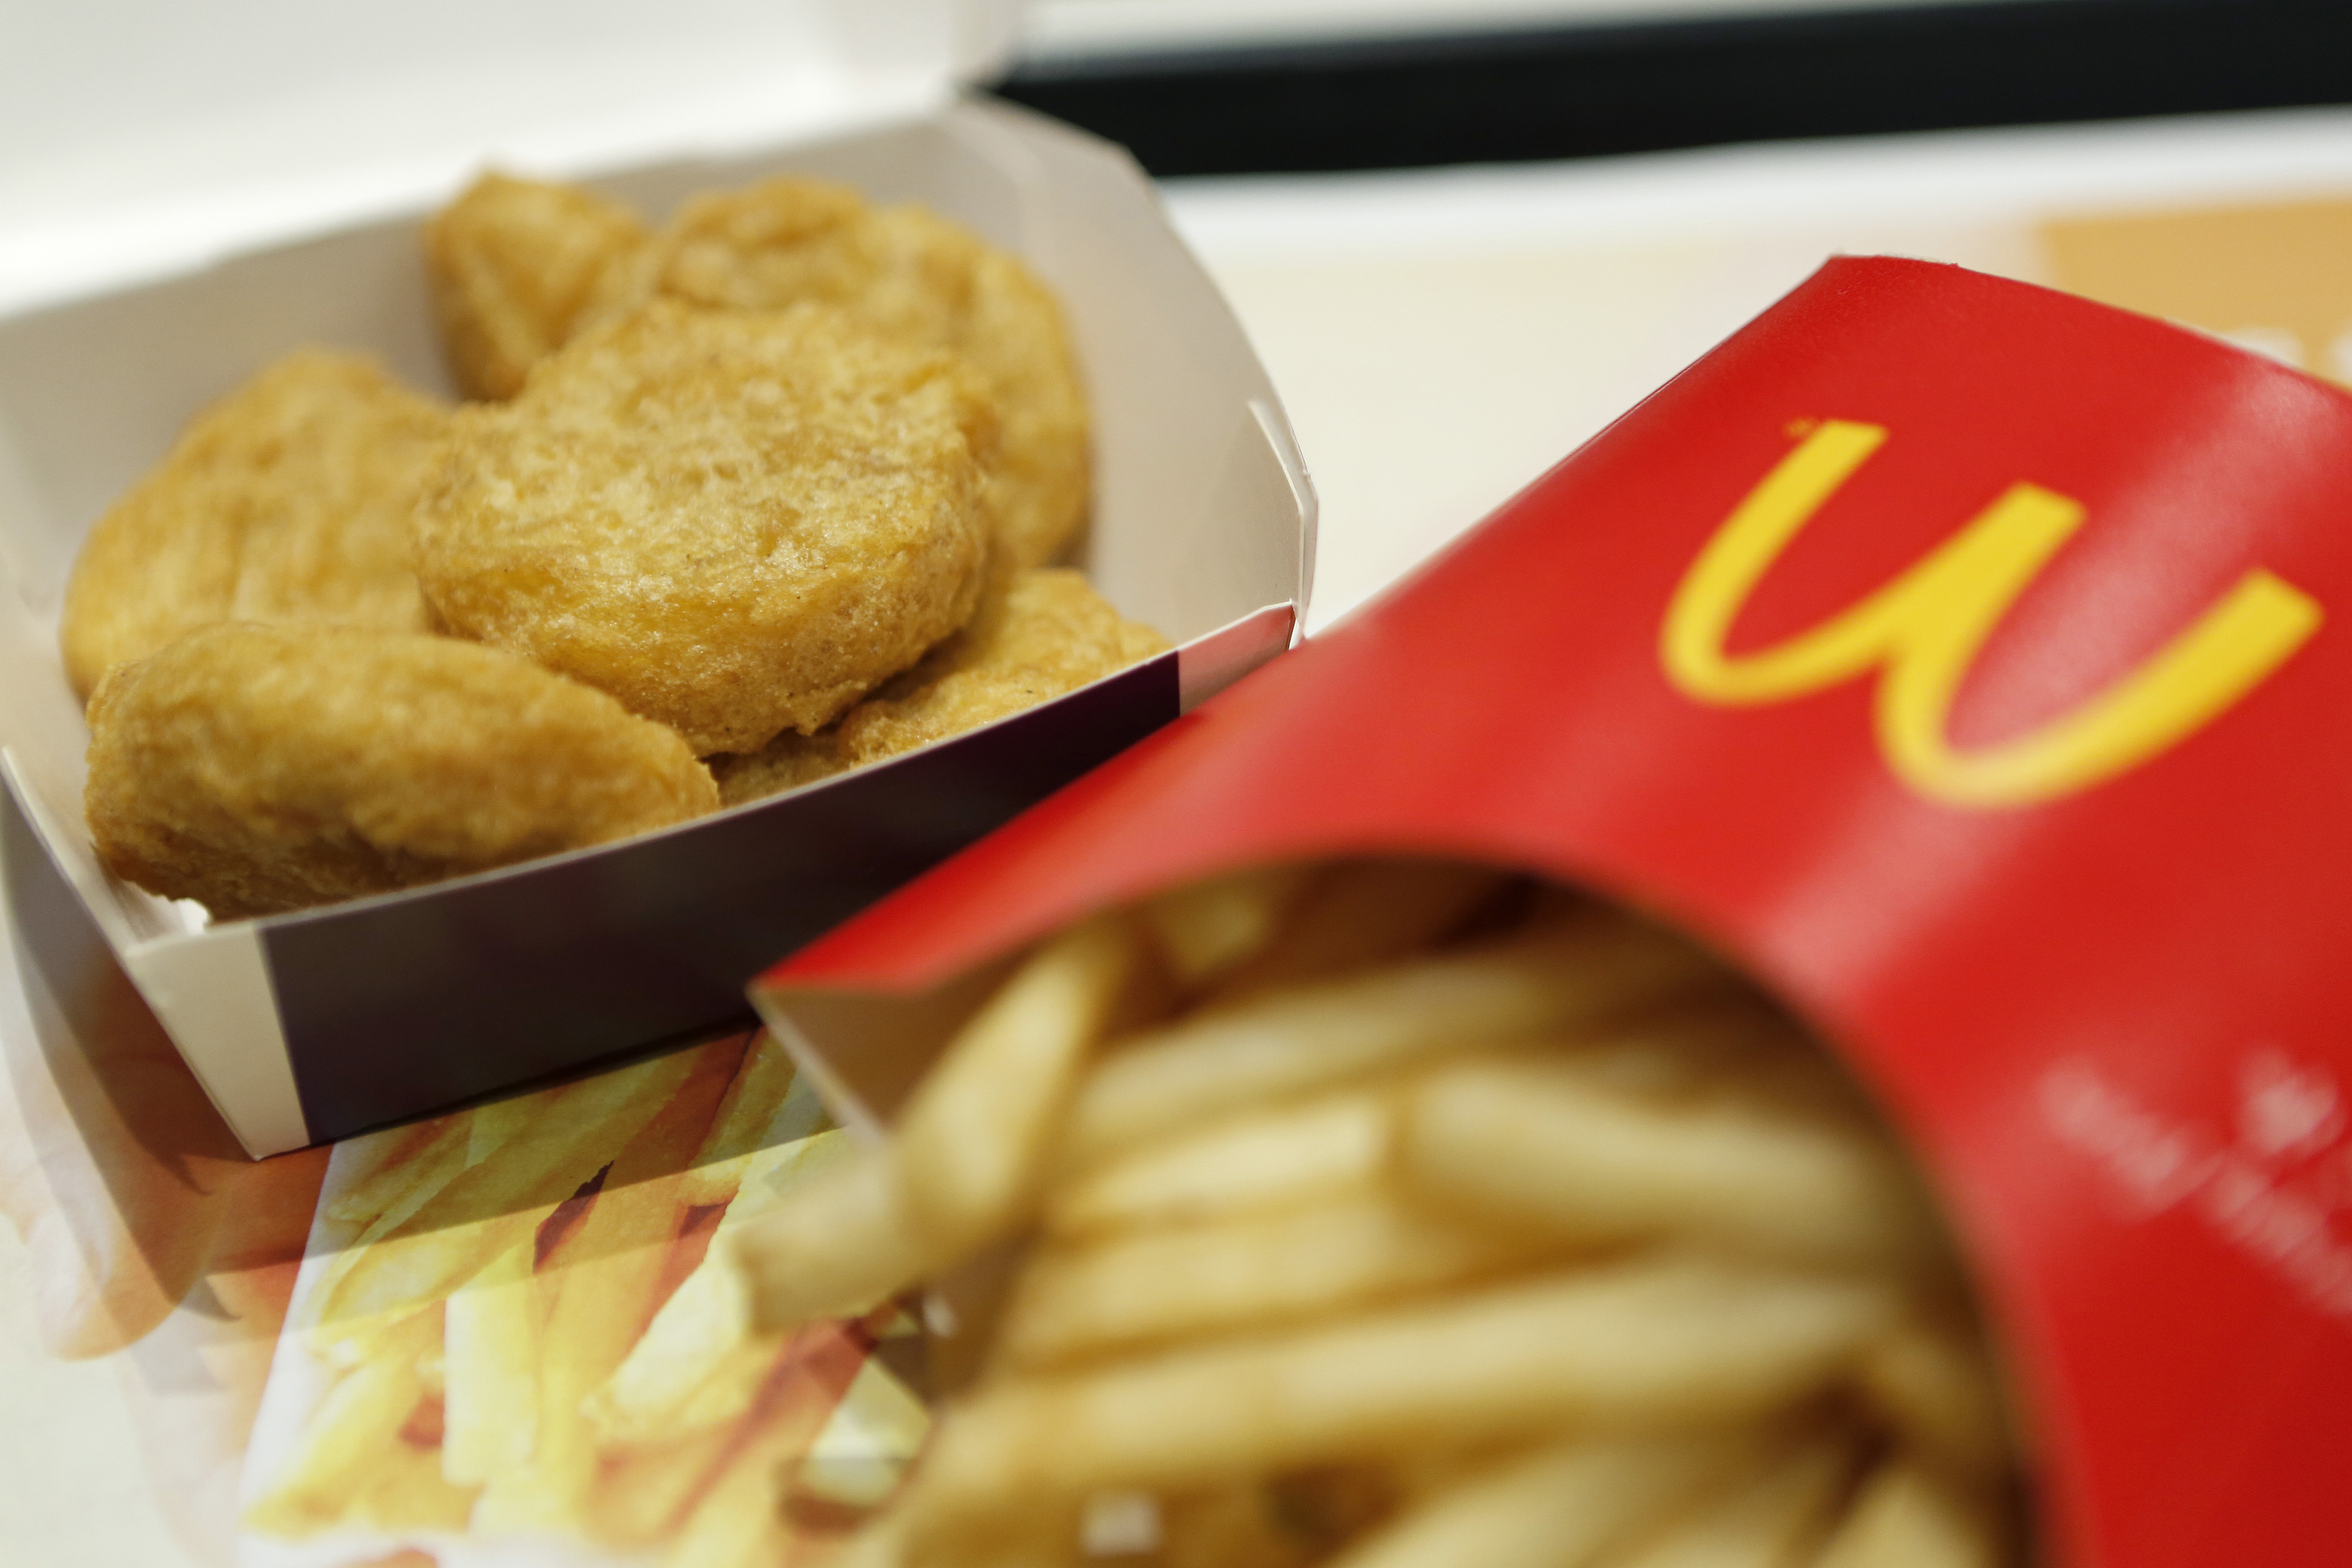 A box of chicken nuggets, left, sits beside a portion of french fries at a McDonald's restaurant, operated by McDonald's Holdings Co. Japan Ltd., in Tokyo, Japan, on Jan.7, 2015.